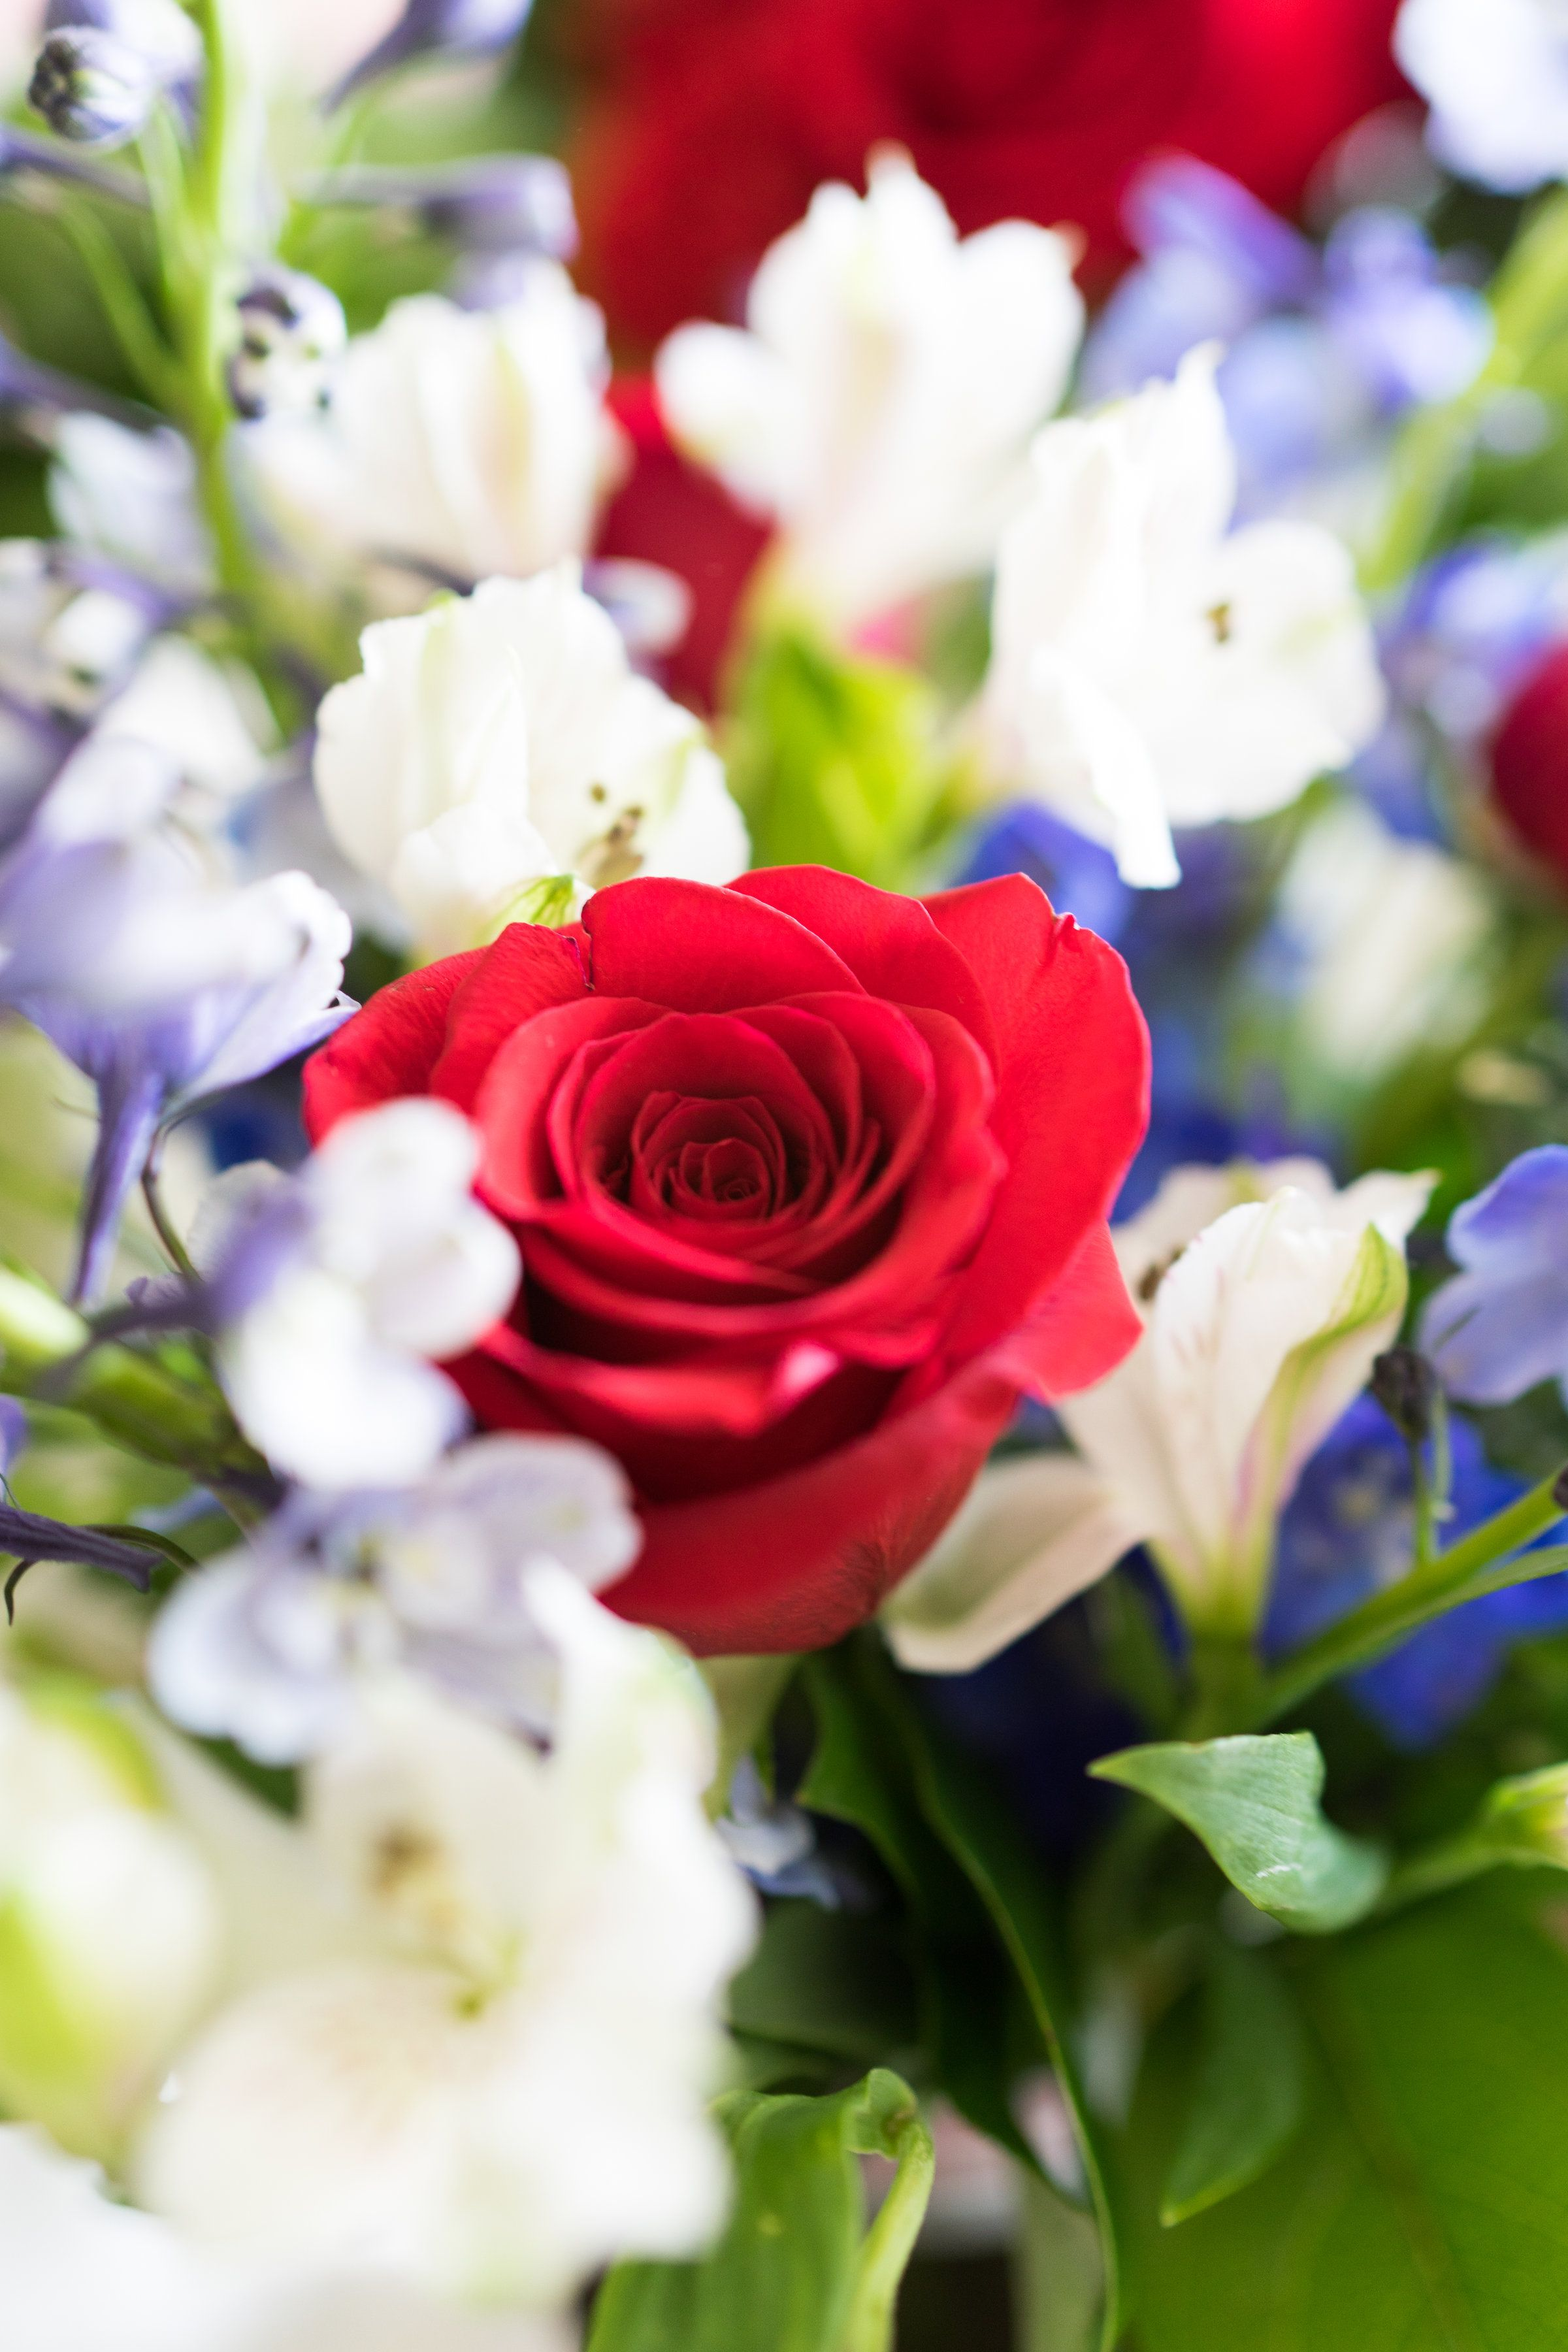 Deep red, brilliant white, and light blue flowers come